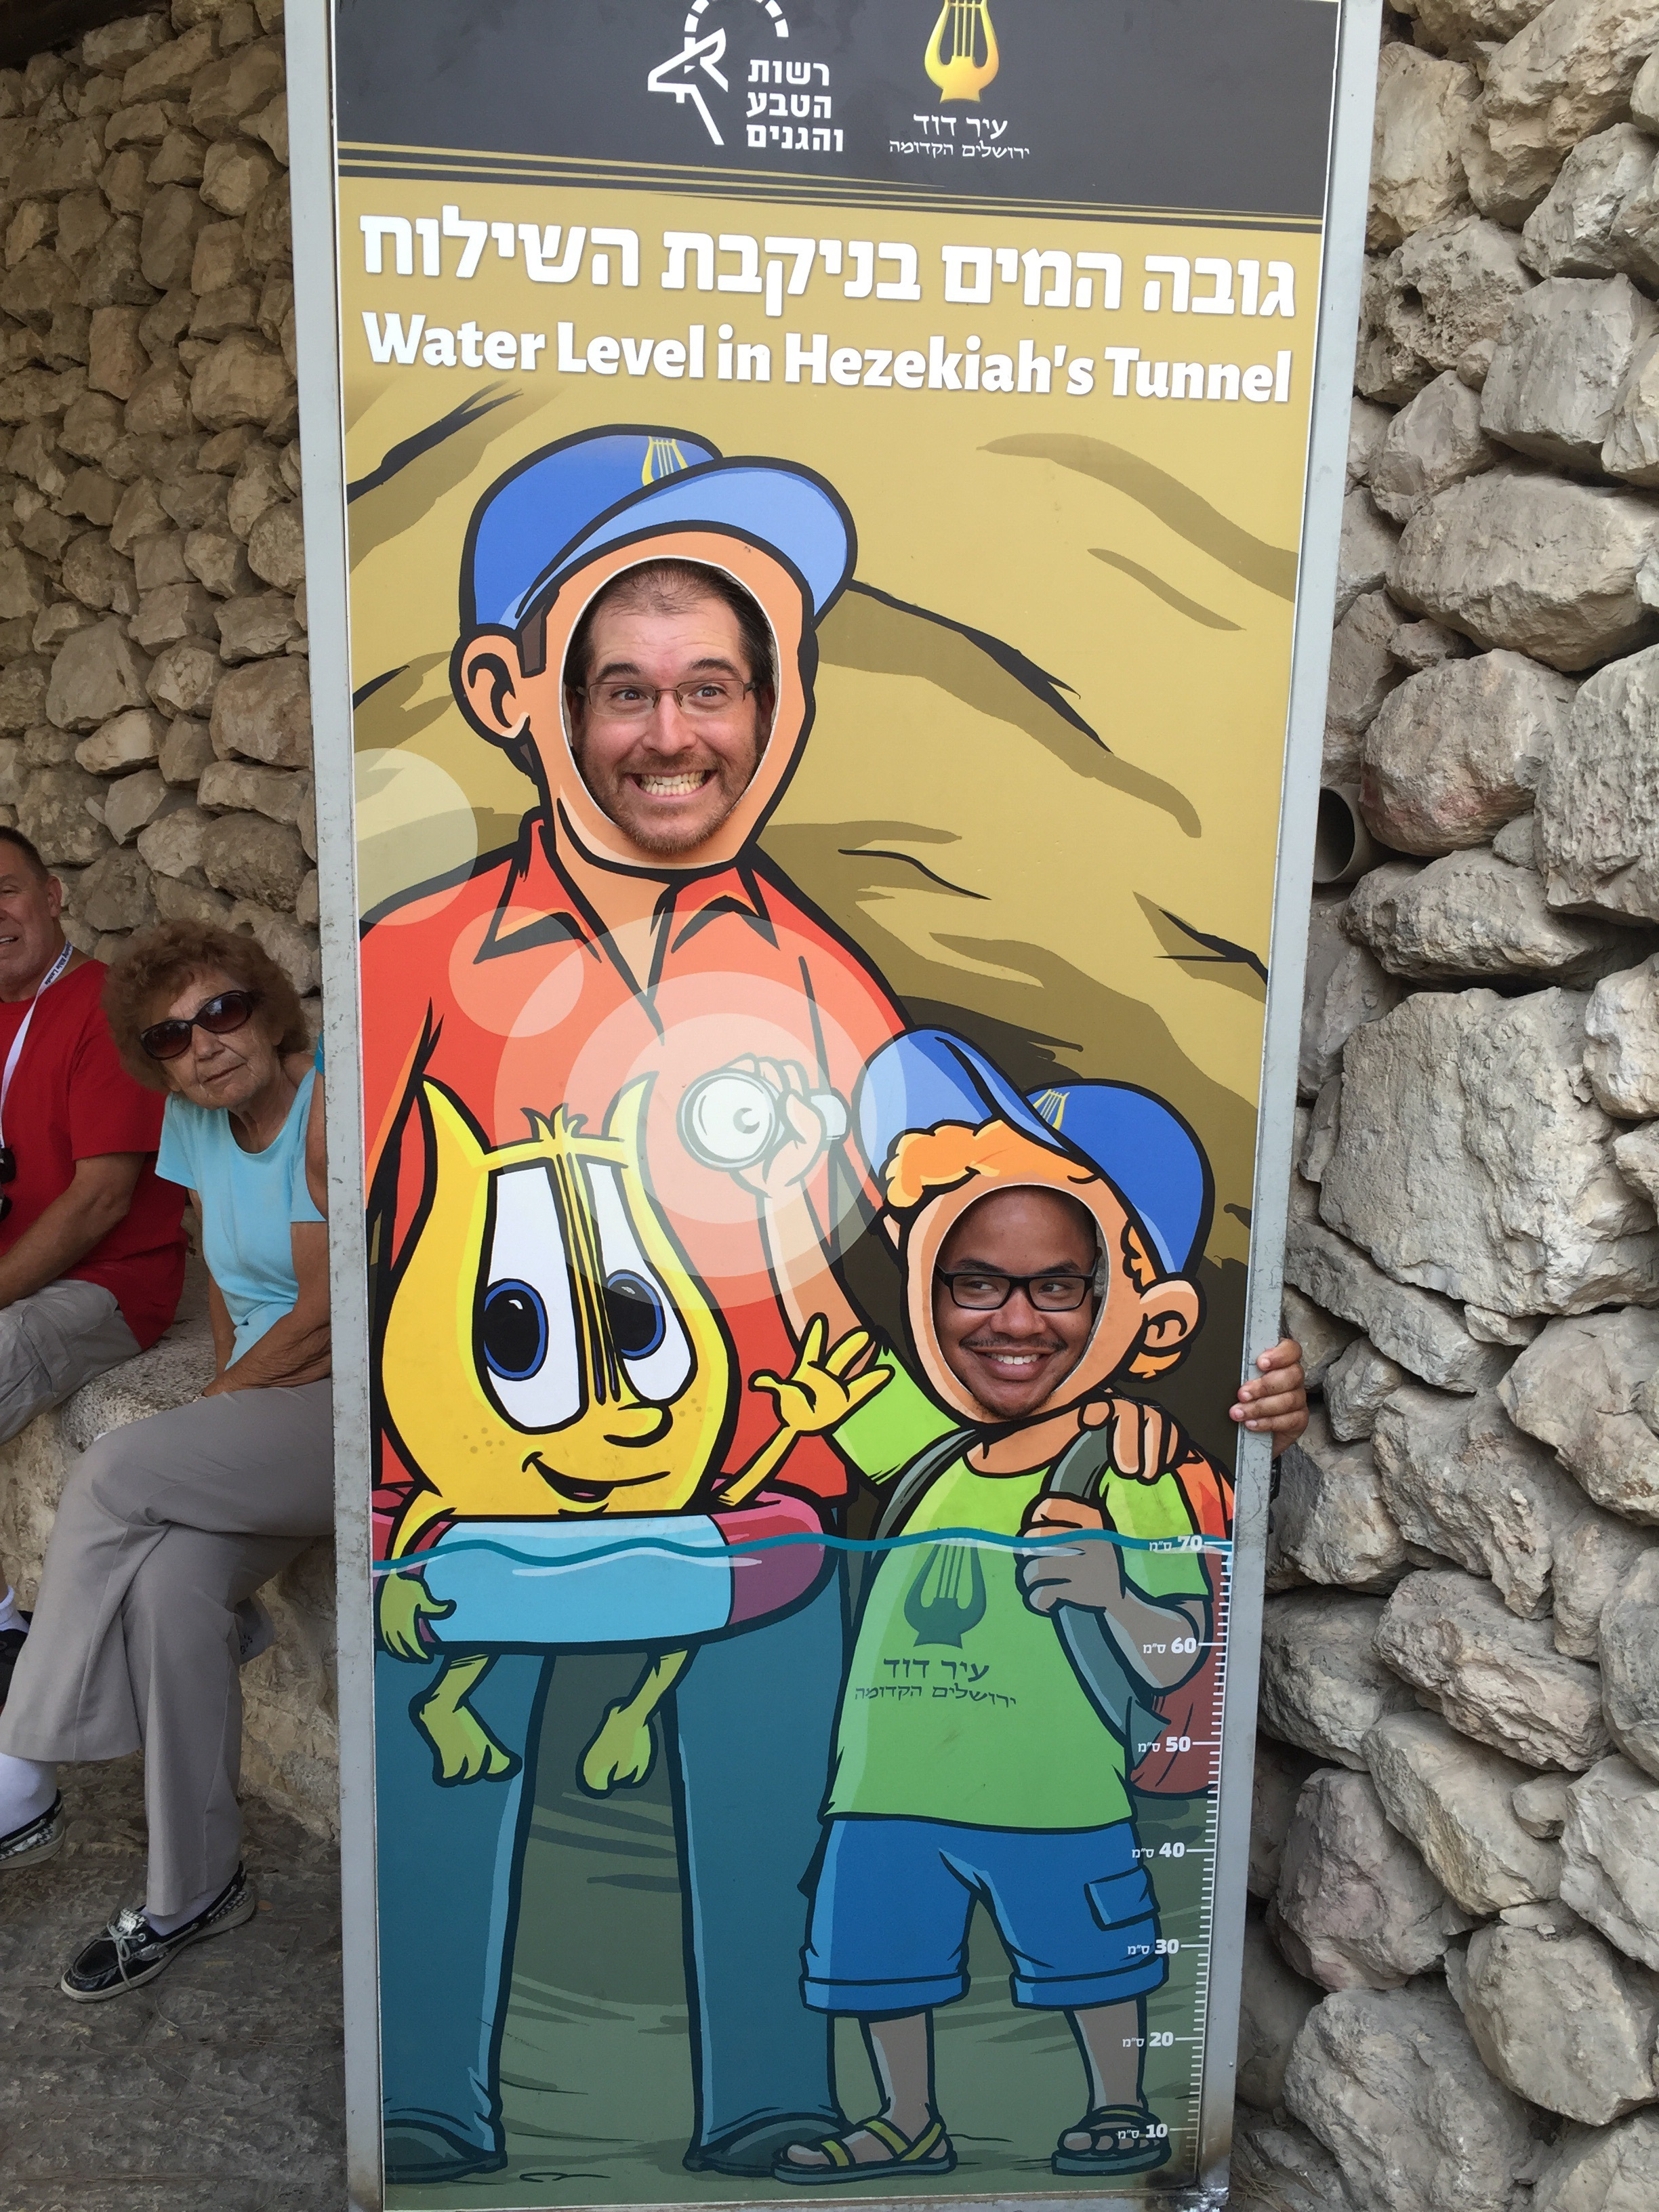 Before we entered Hezekiah's Tunnel, Andrew Roberts and Shawn Jeffries demonstrated how high the water level might get!